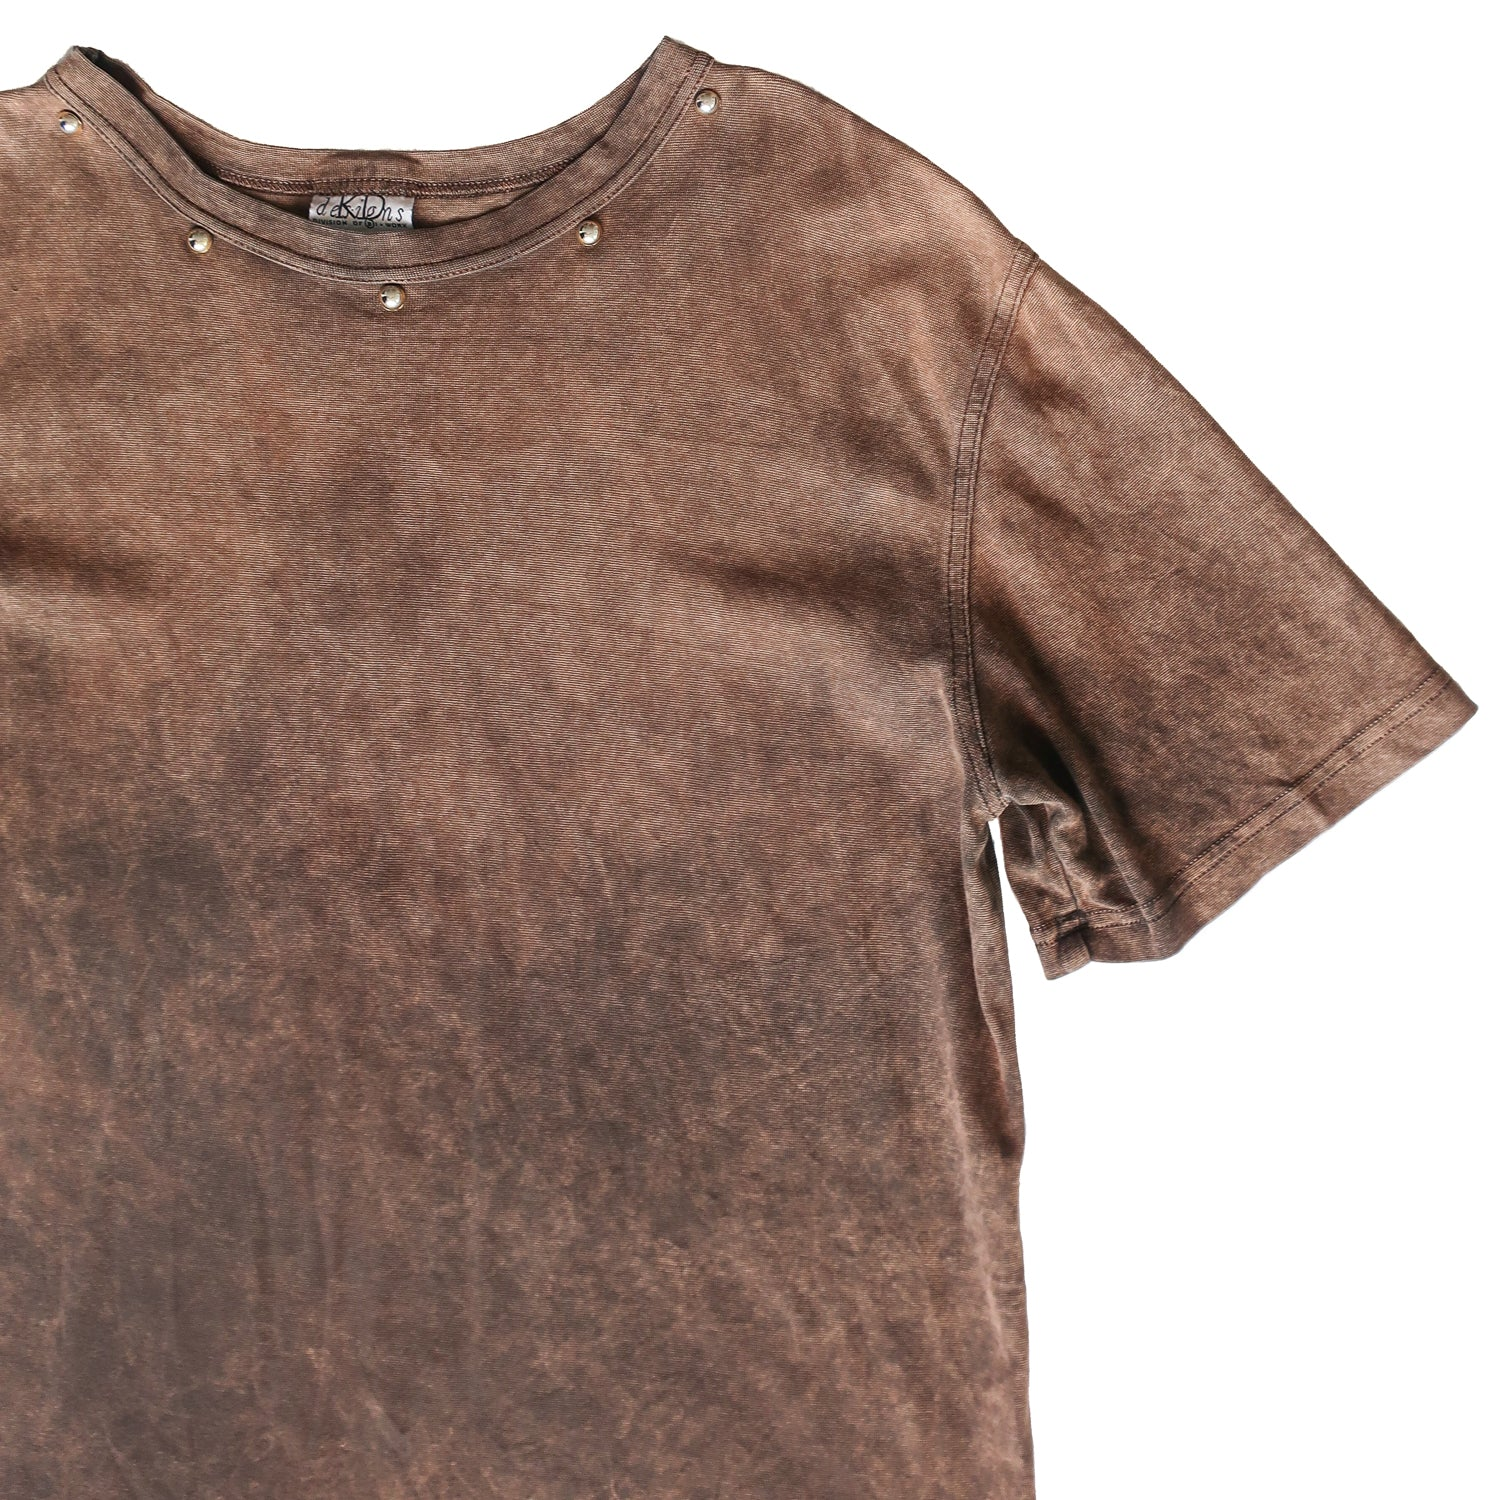 Second Room Vintage Clothing. Vintage short sleeve, brown acid washed t-shirt with silver metal studs along the front of the neckline. Free Shipping on all orders within North America.